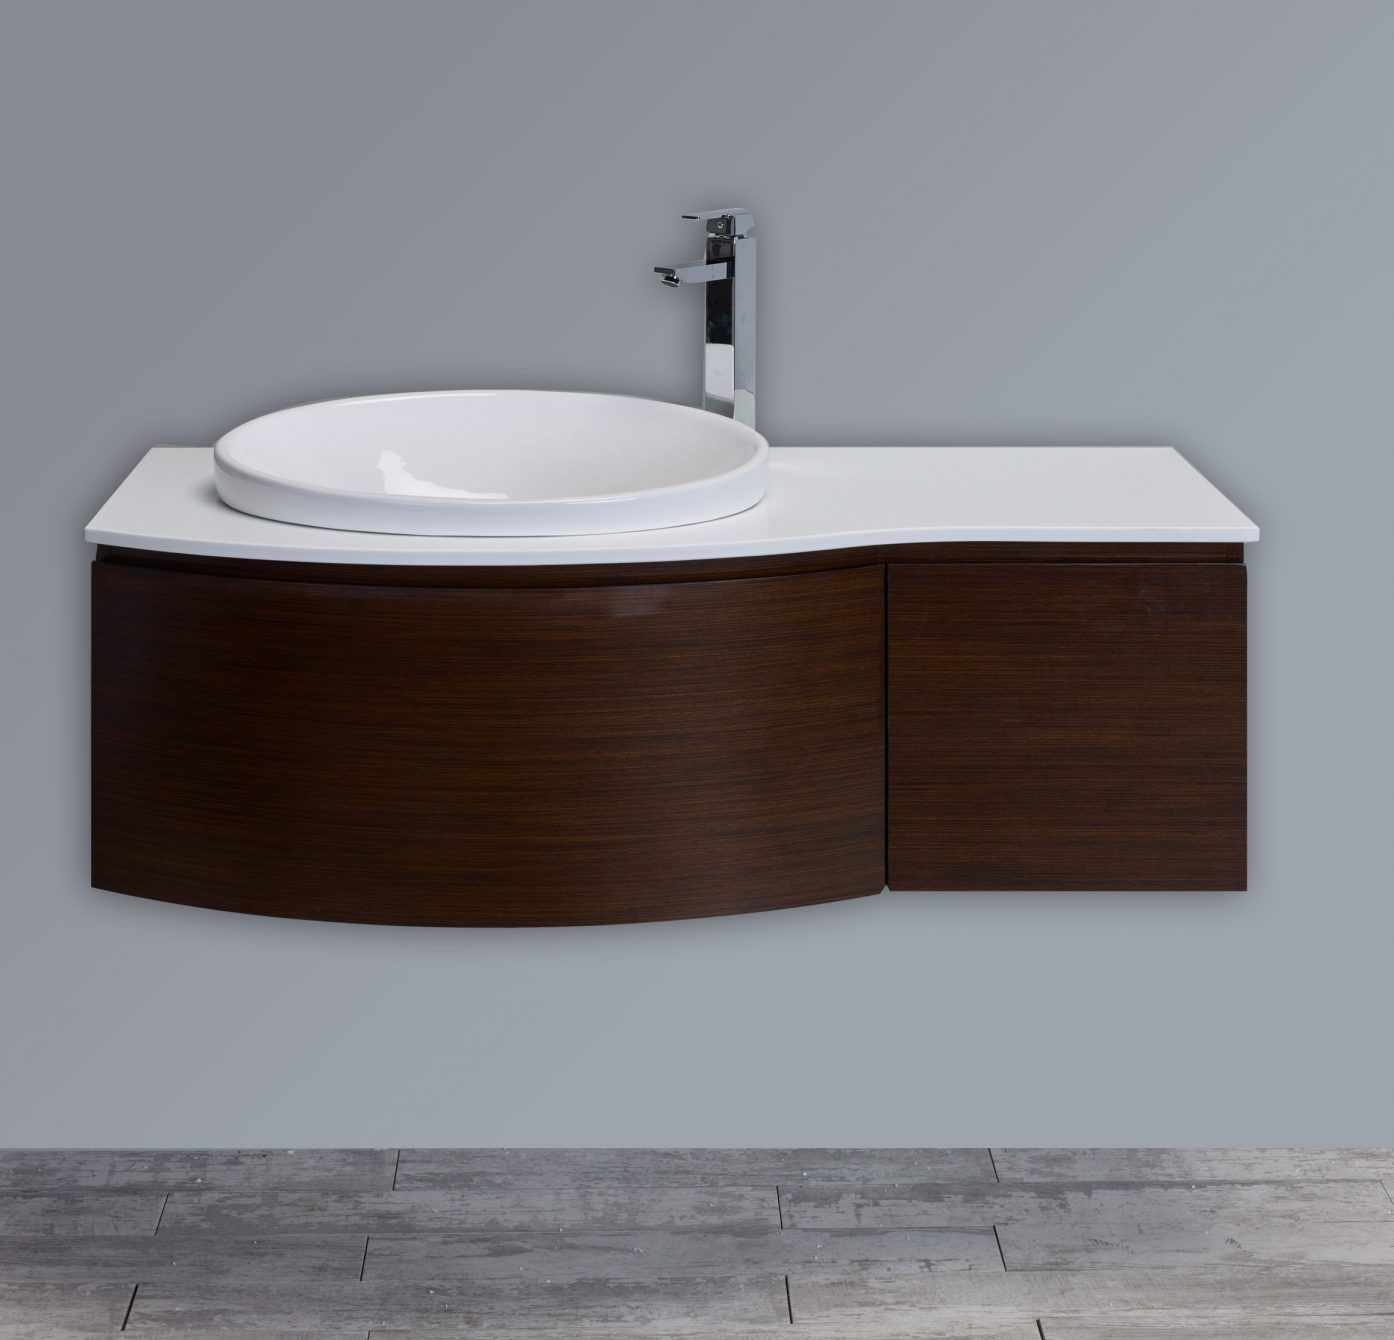 Awesome Websites Eviva Curvy u Iron Wood Modern Bathroom Vanity Wall Mount with Glassos Counter